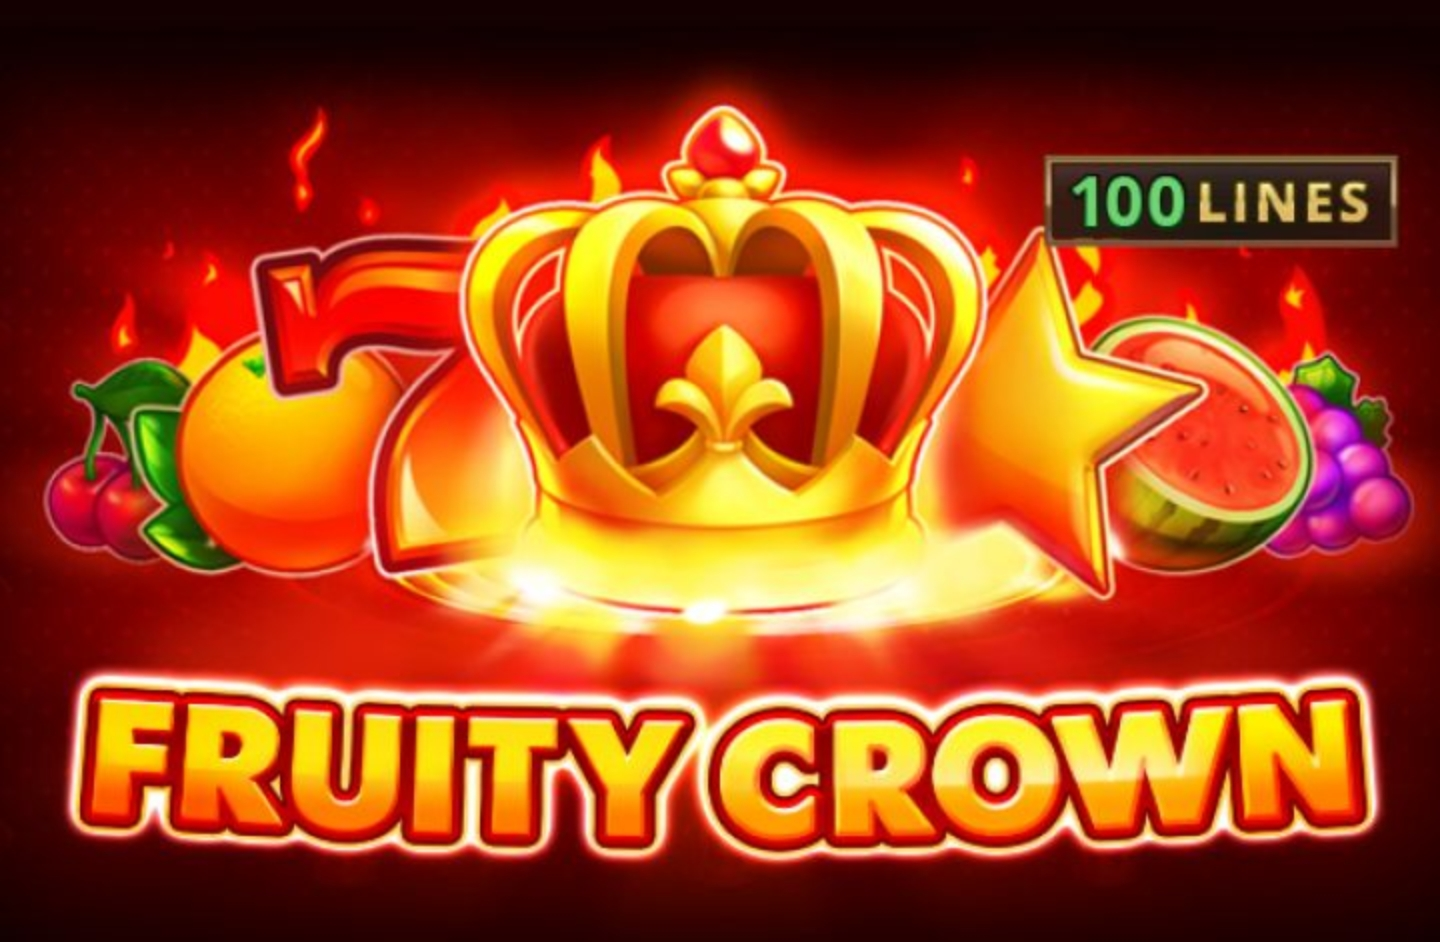 The Fruity Crown Online Slot Demo Game by Playson